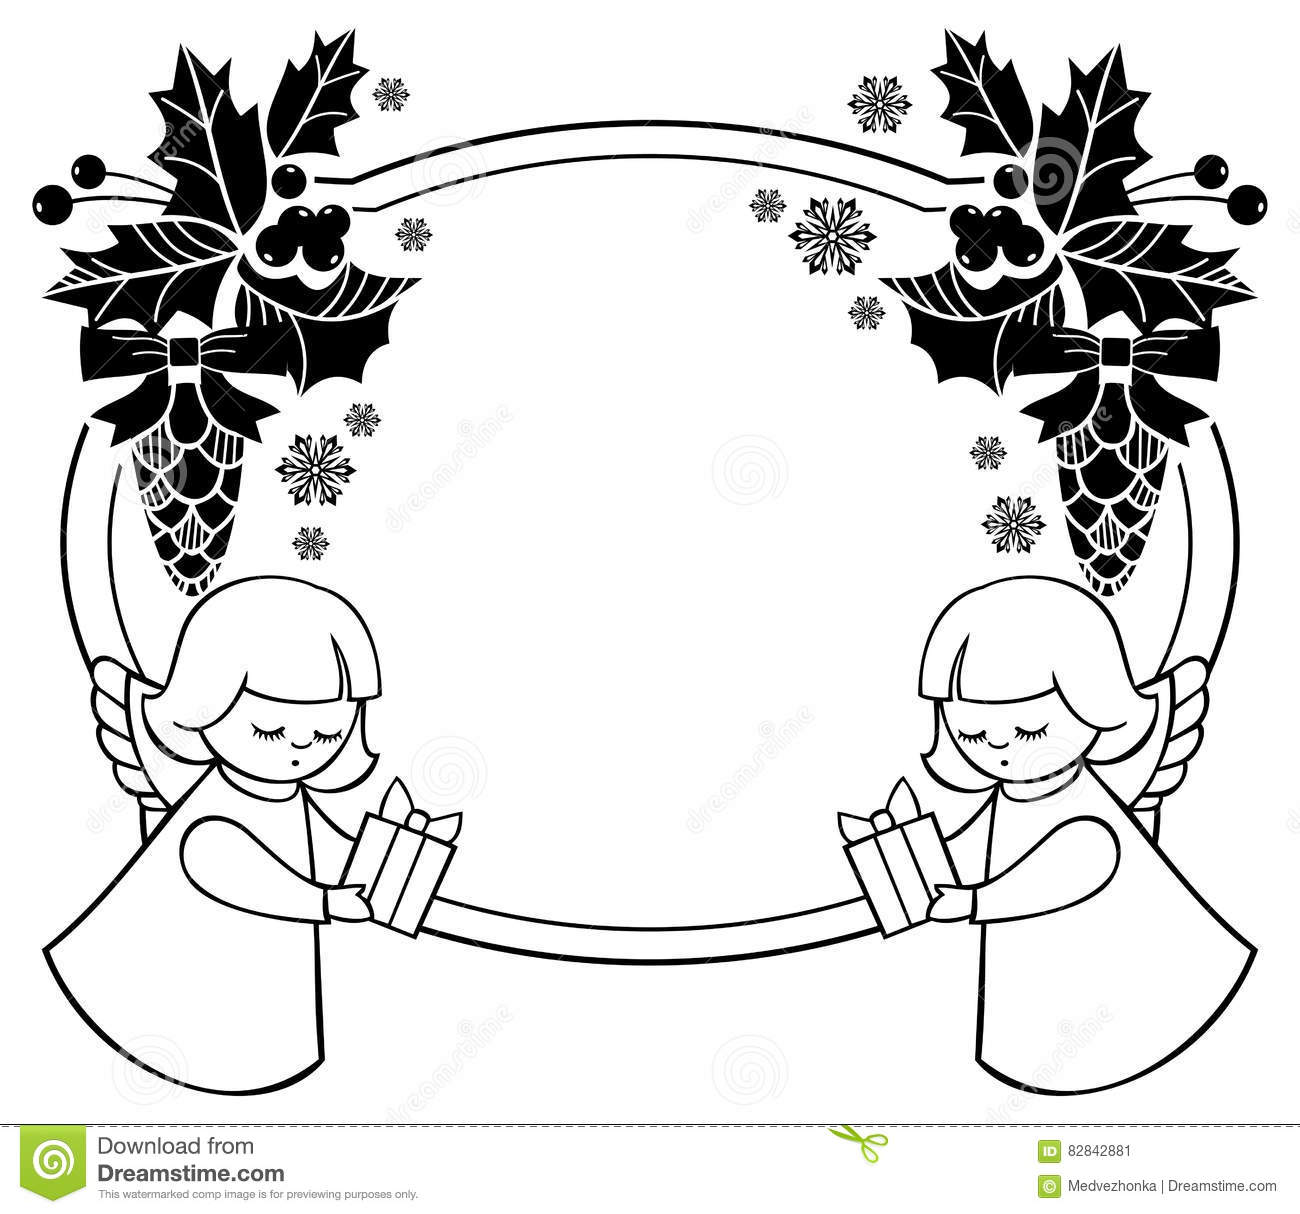 Black And White Christmas Frame With Cute Angel. Stock Illustration - Illustration of cartton ...